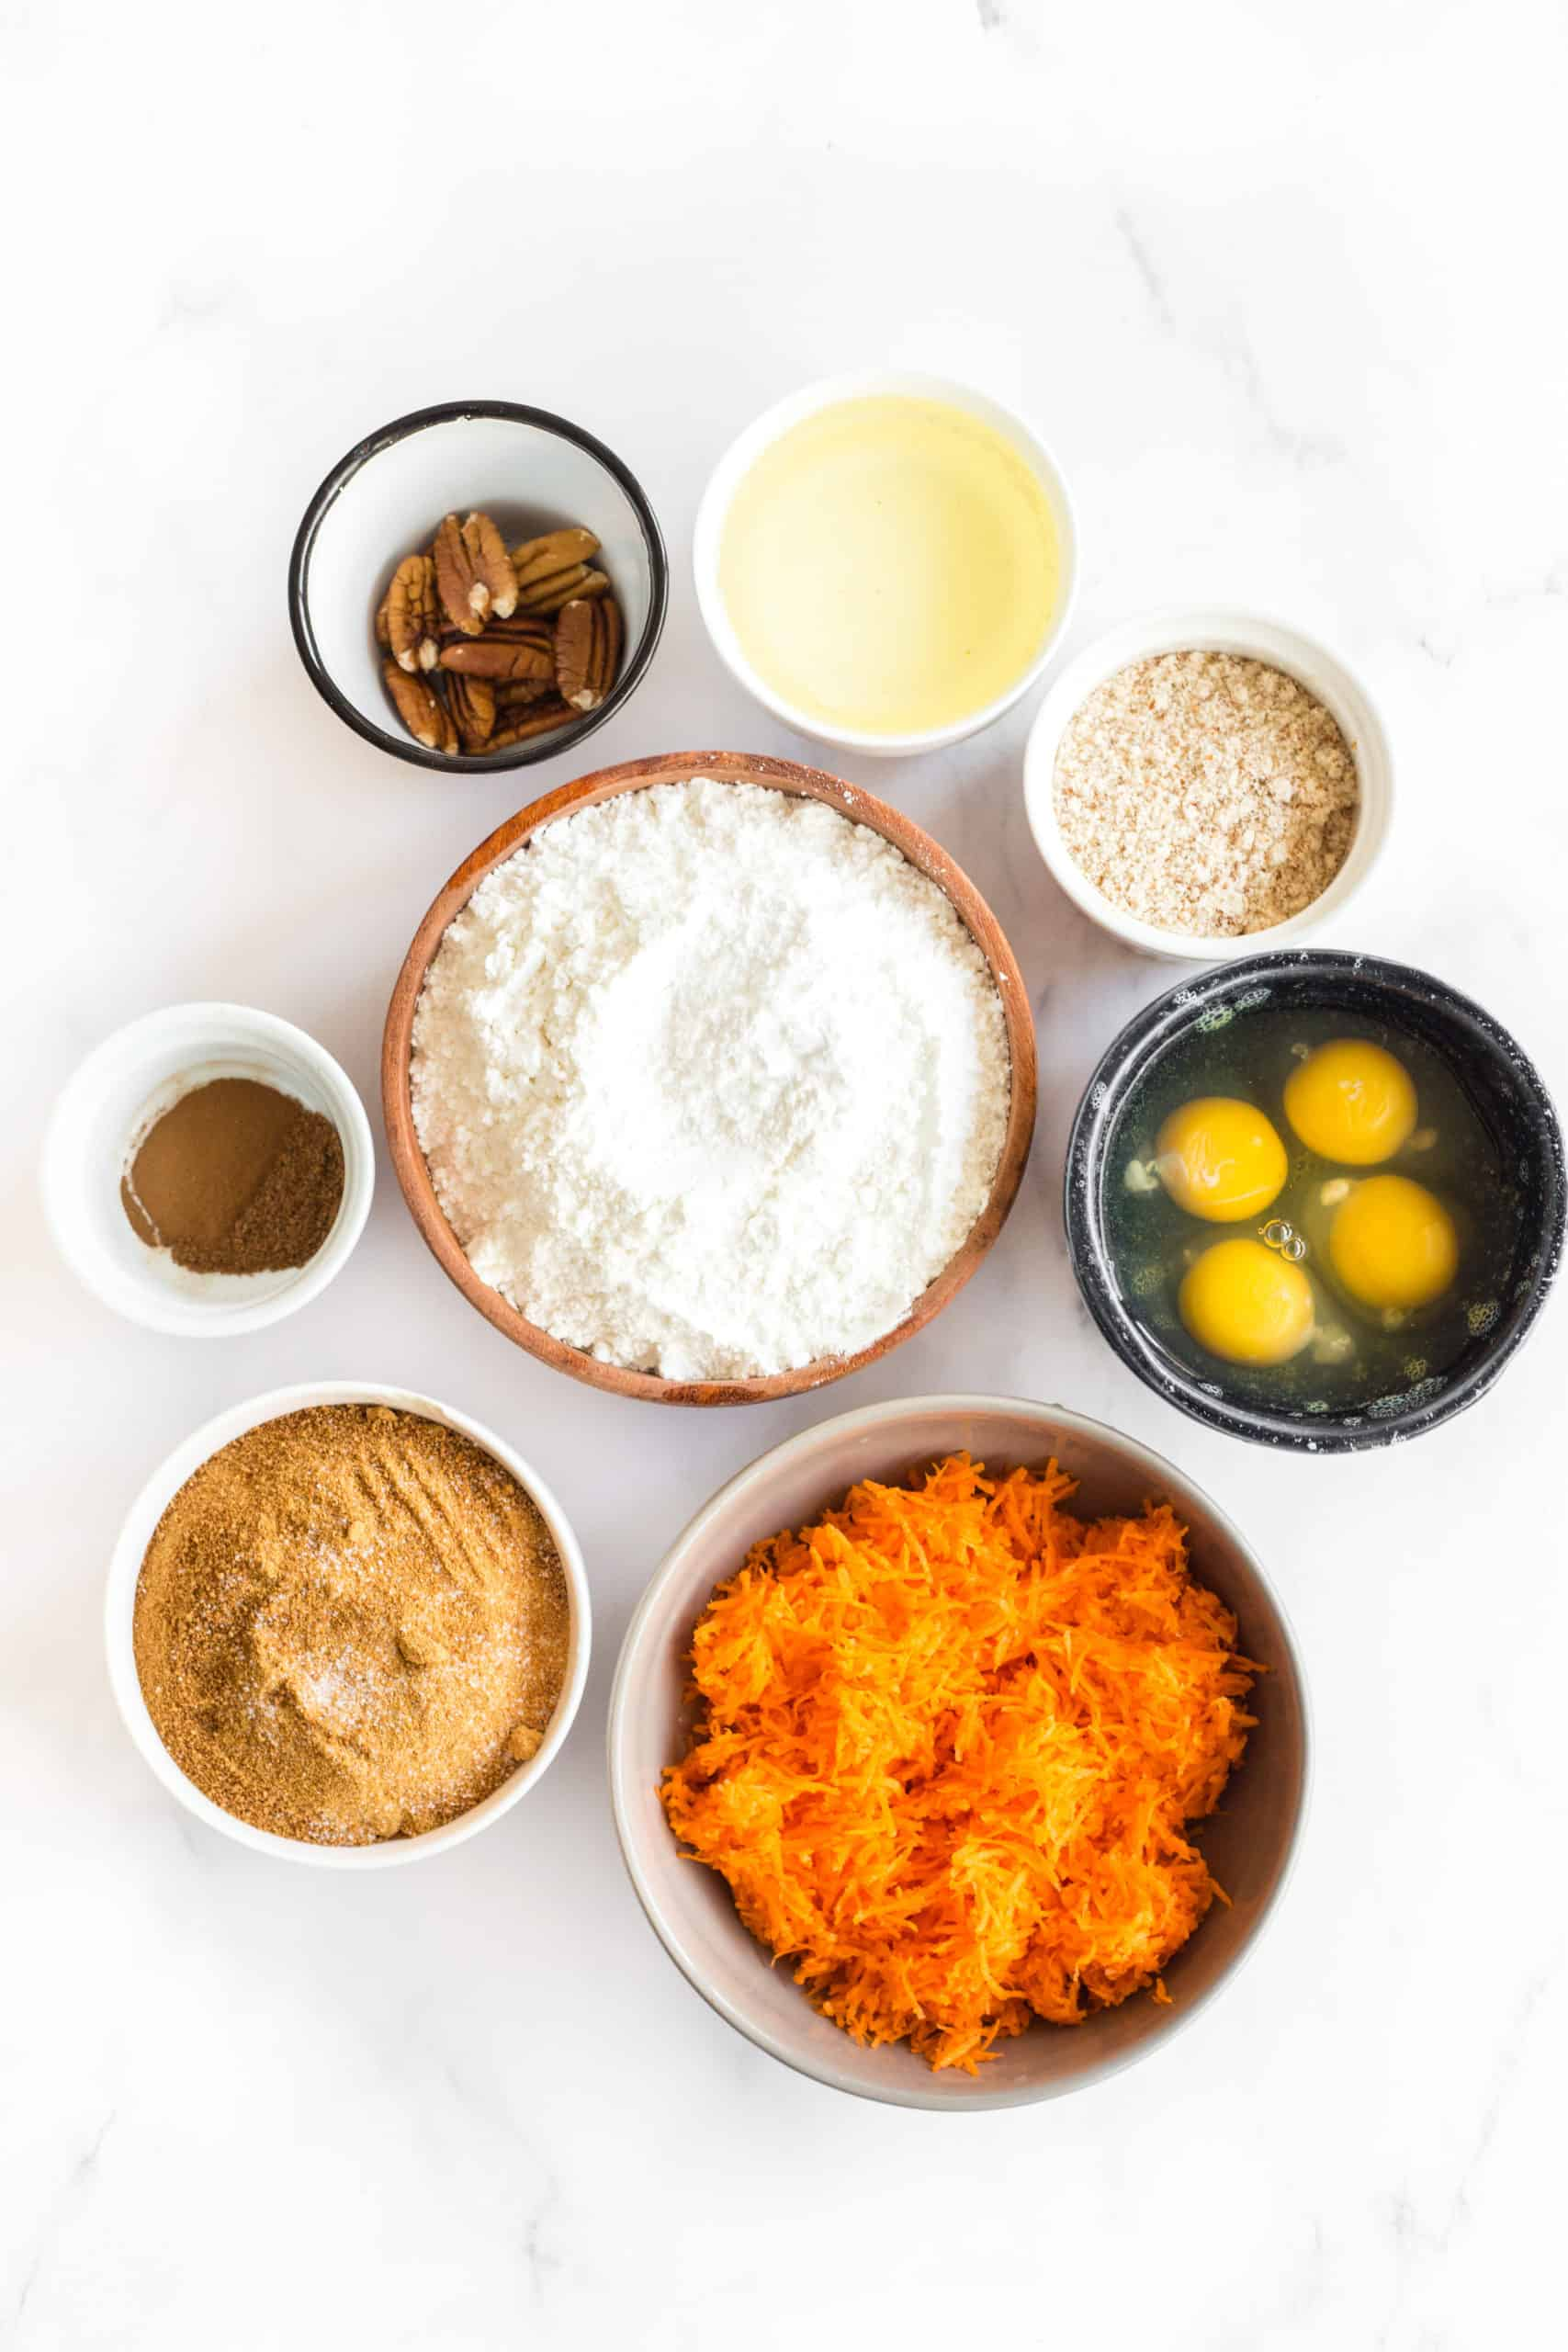 Ingredients for gluten-free carrot cake bread on a marble board